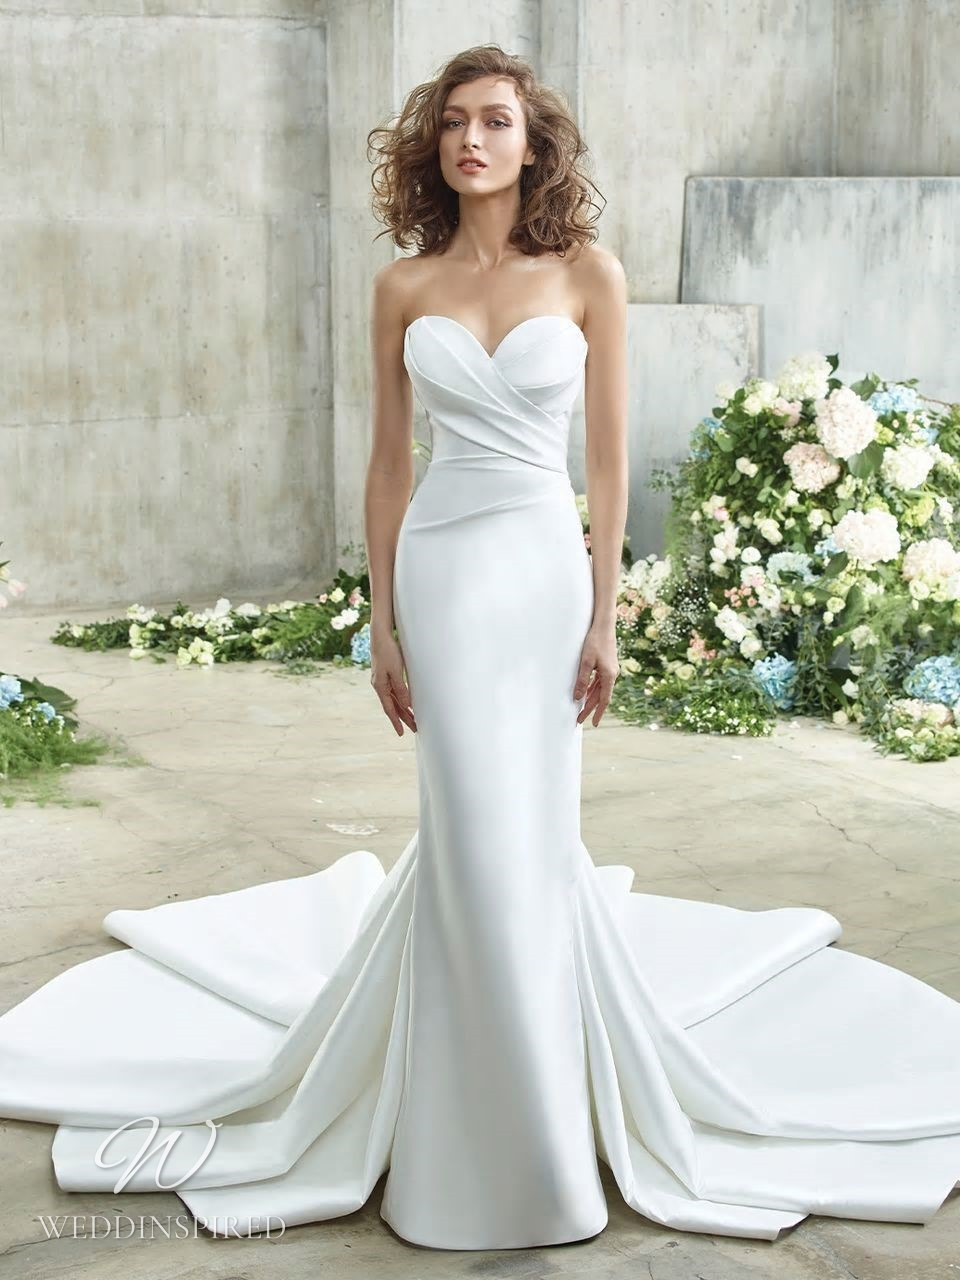 A Badgley Mischka silk column wedding dress with a detachable skirt and a sweetheart neckline